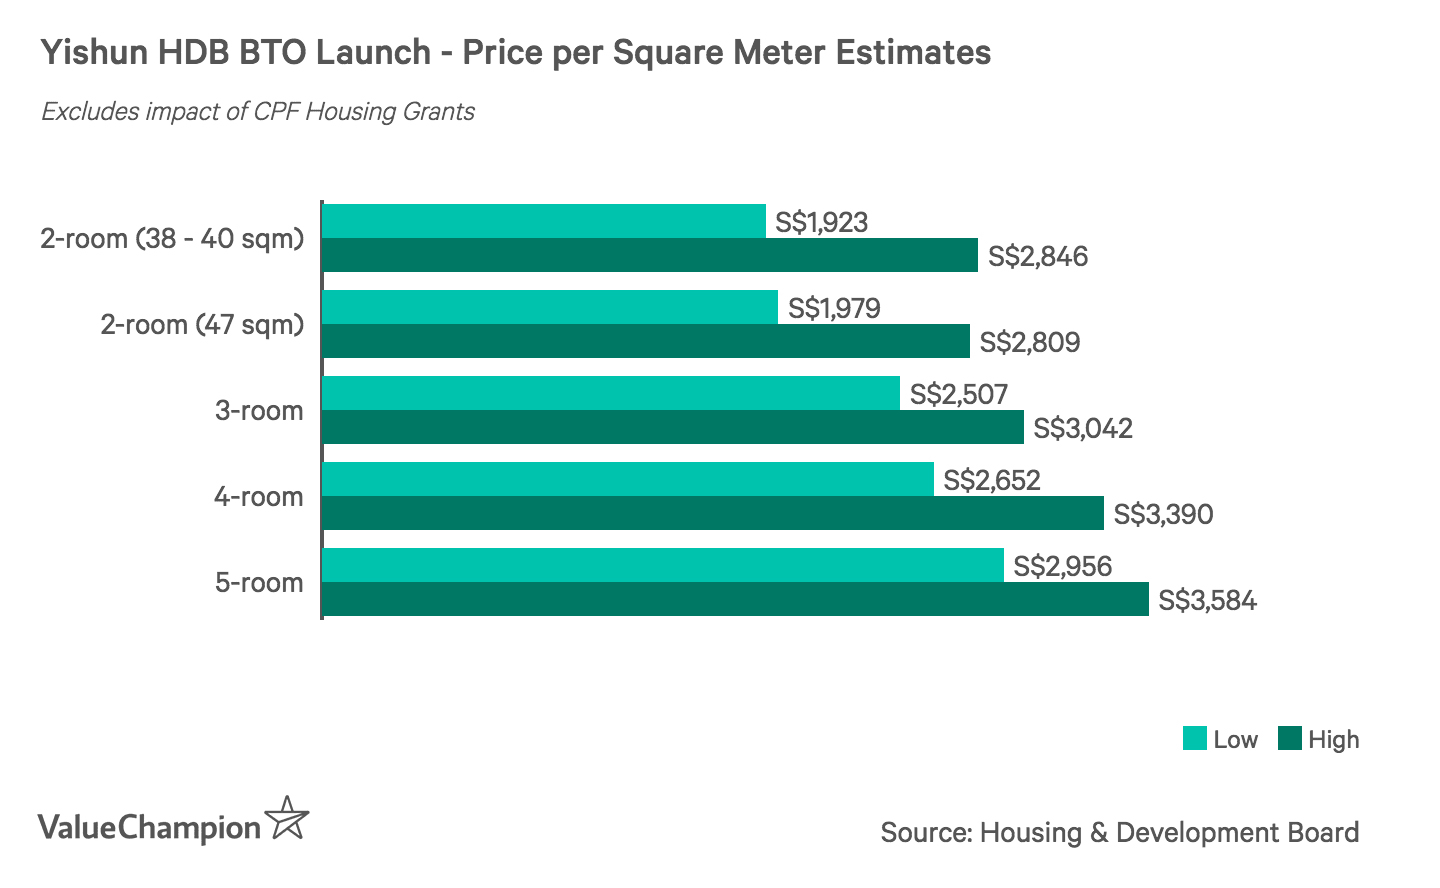 Yishun HDB BTO Launch - Price per Square Meter Estimates